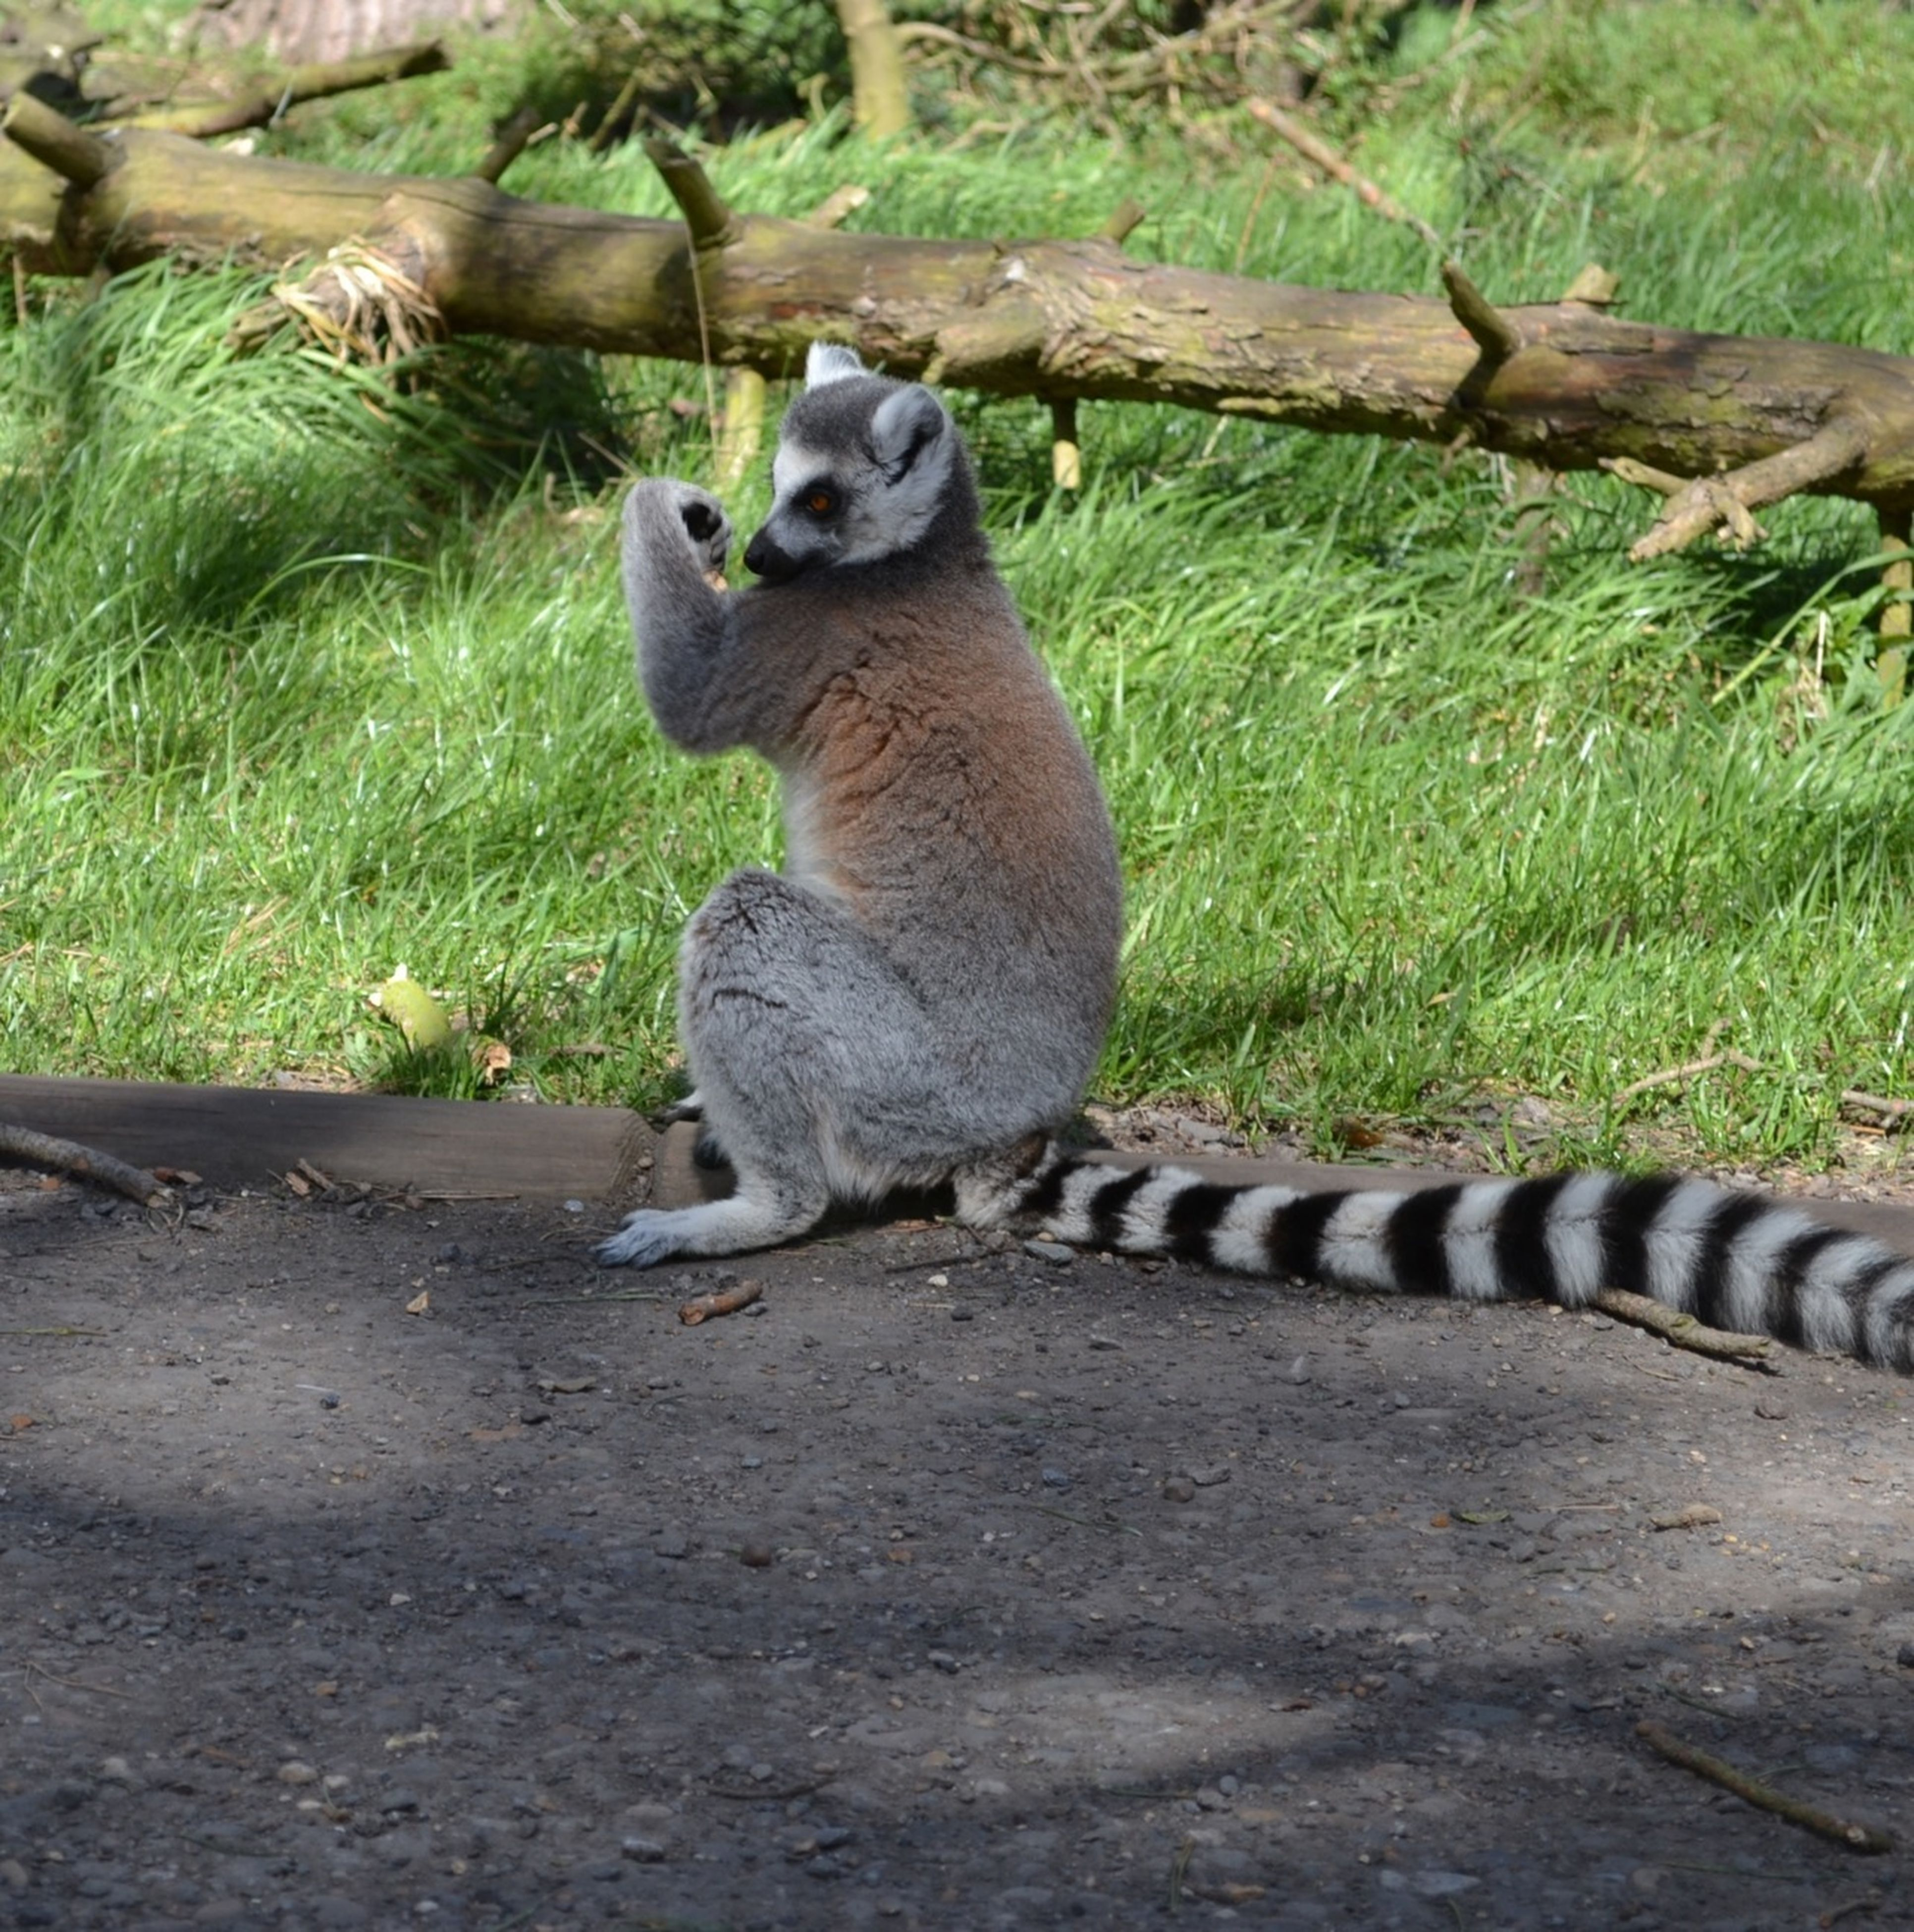 animal themes, animals in the wild, one animal, wildlife, grass, full length, mammal, plant, zoo, nature, outdoors, field, sitting, day, no people, animals in captivity, green color, relaxation, looking away, side view